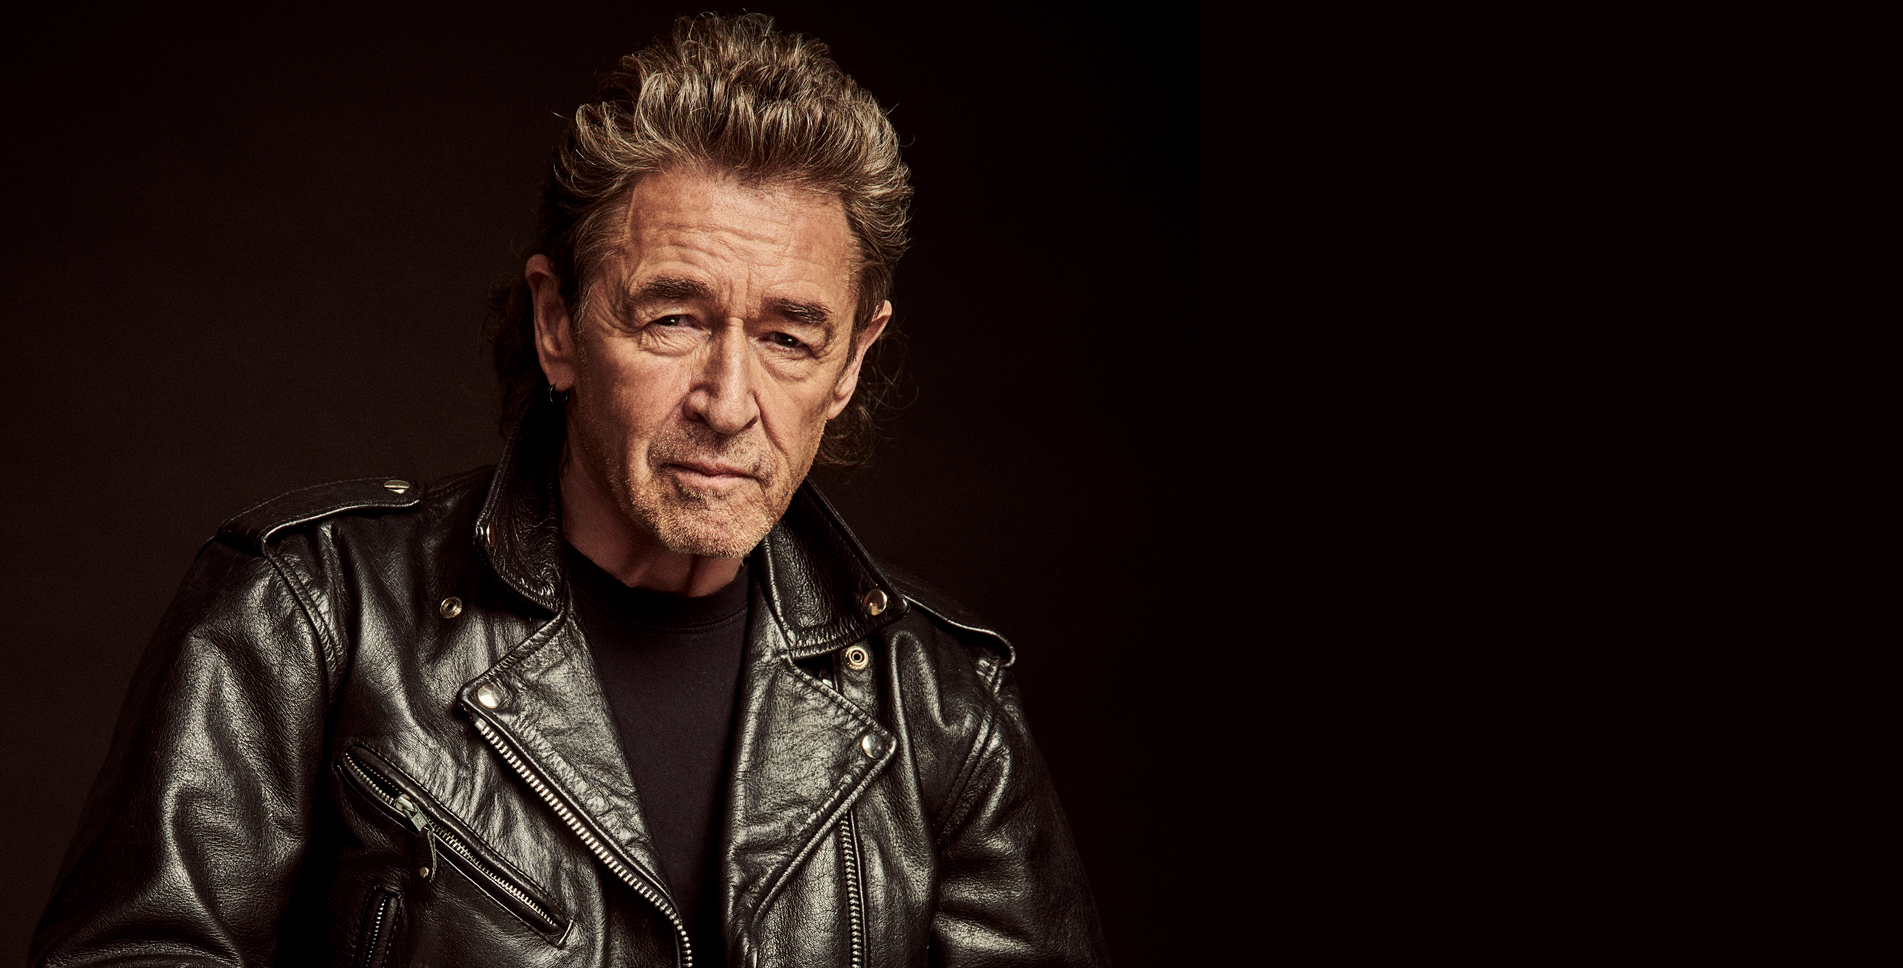 Peter Maffay LIVE am 04. Juli 2021